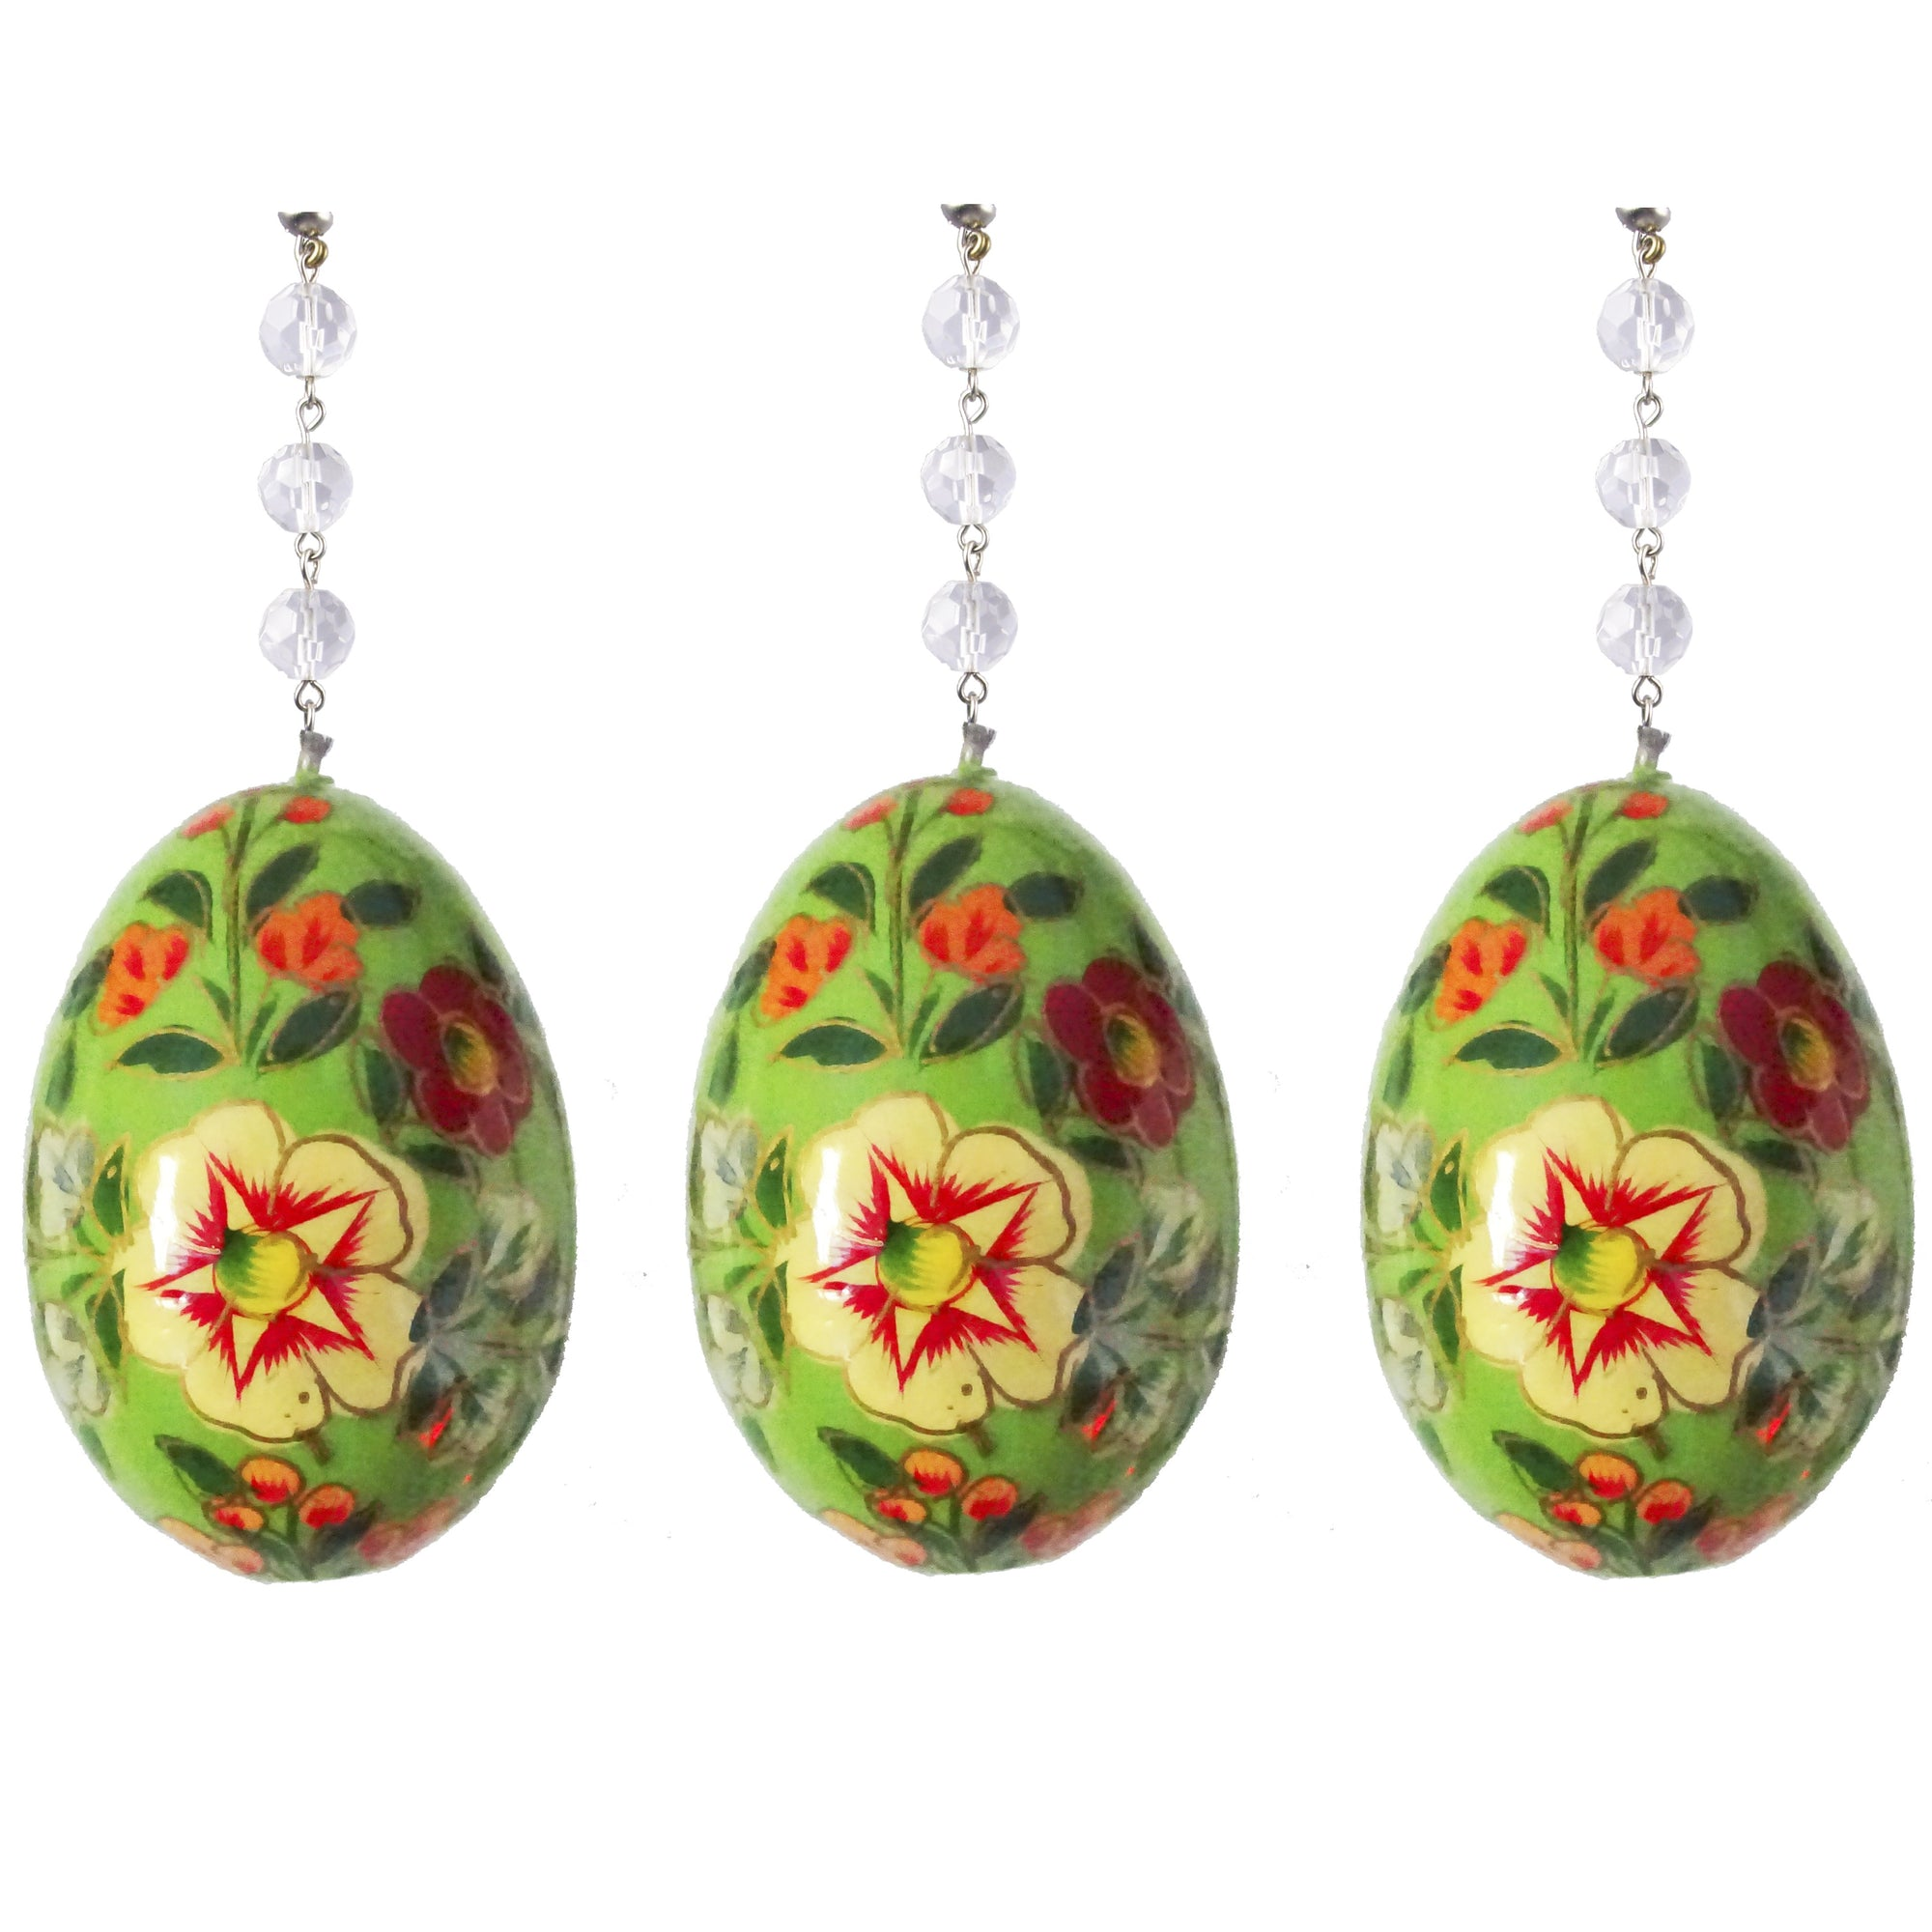 Green Floral Egg - Yellow Flower - MAGNETIC SPRING ORNAMENT - Magnetic Chandelier Accessory TrimKit® ( Set/3) Chandelier Crystals | Magnetic Crystals | Lamp Crystals MagTrim